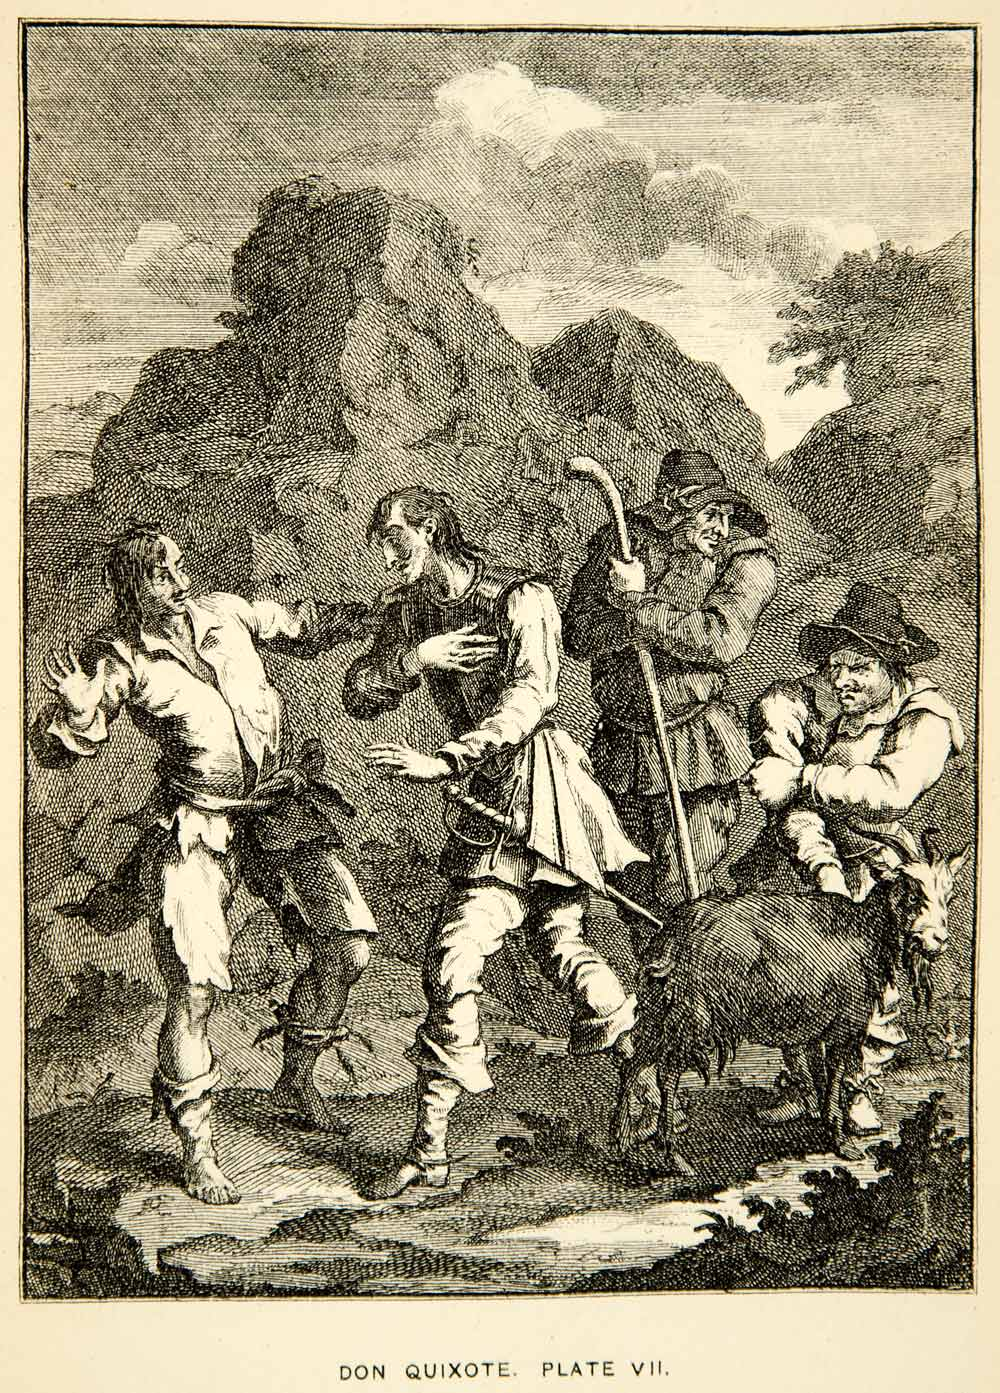 1883 Photolithograph William Hogarth Art Don Quixote Knight Rock XACA2